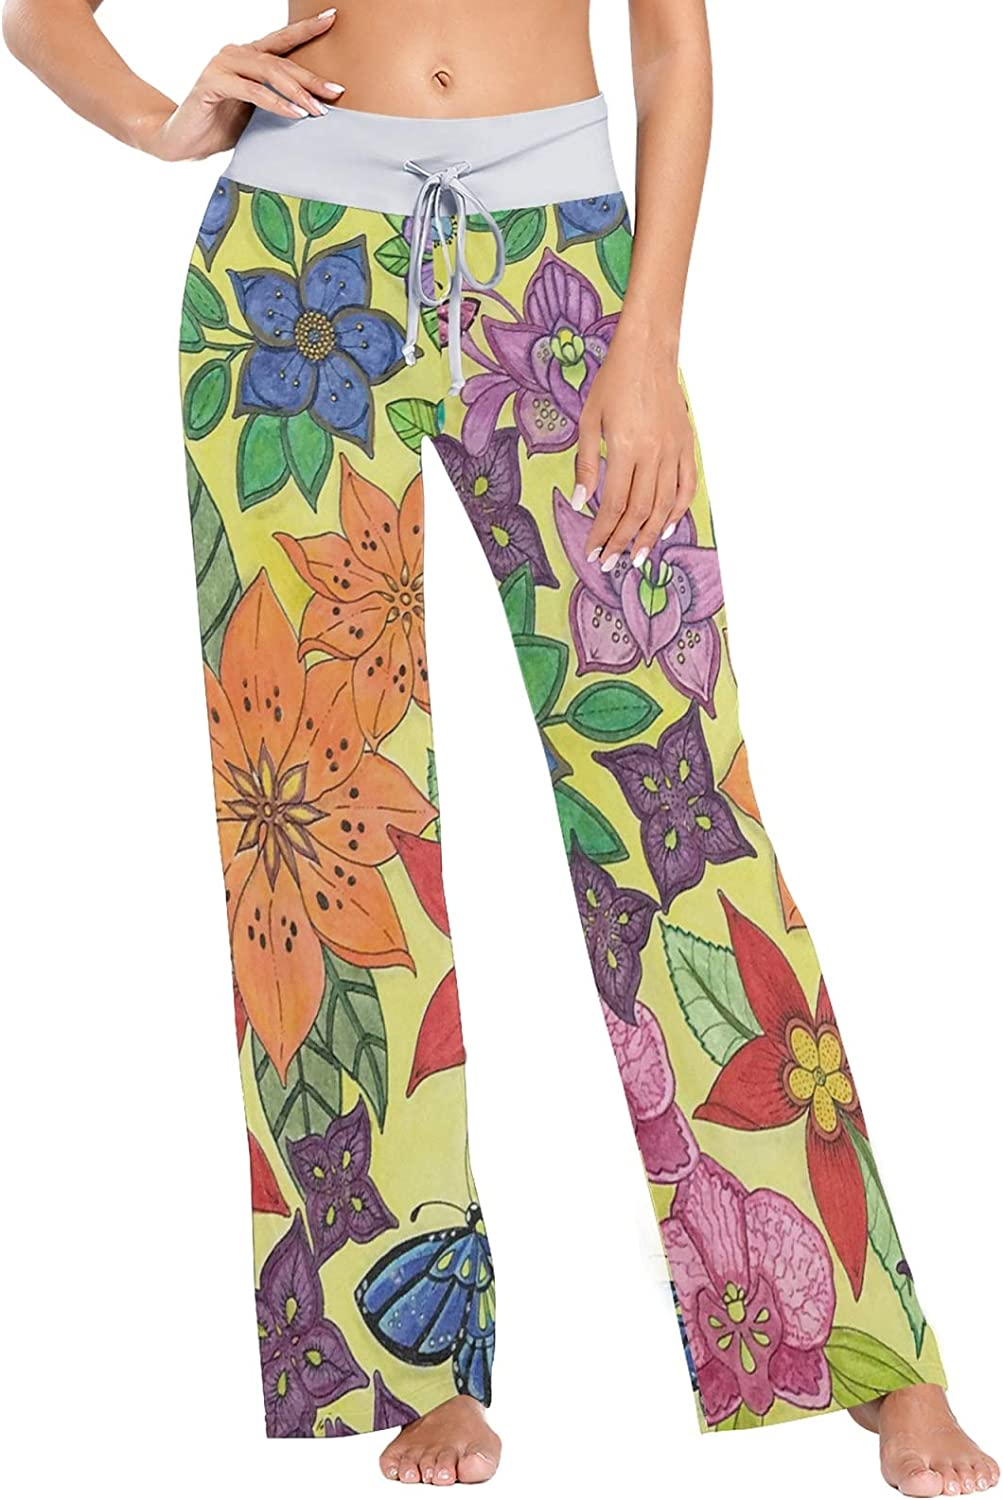 MSACRH Pajama Pants for Max 60% OFF Women Pa Safety and trust Flower Sleepwear Butterfly